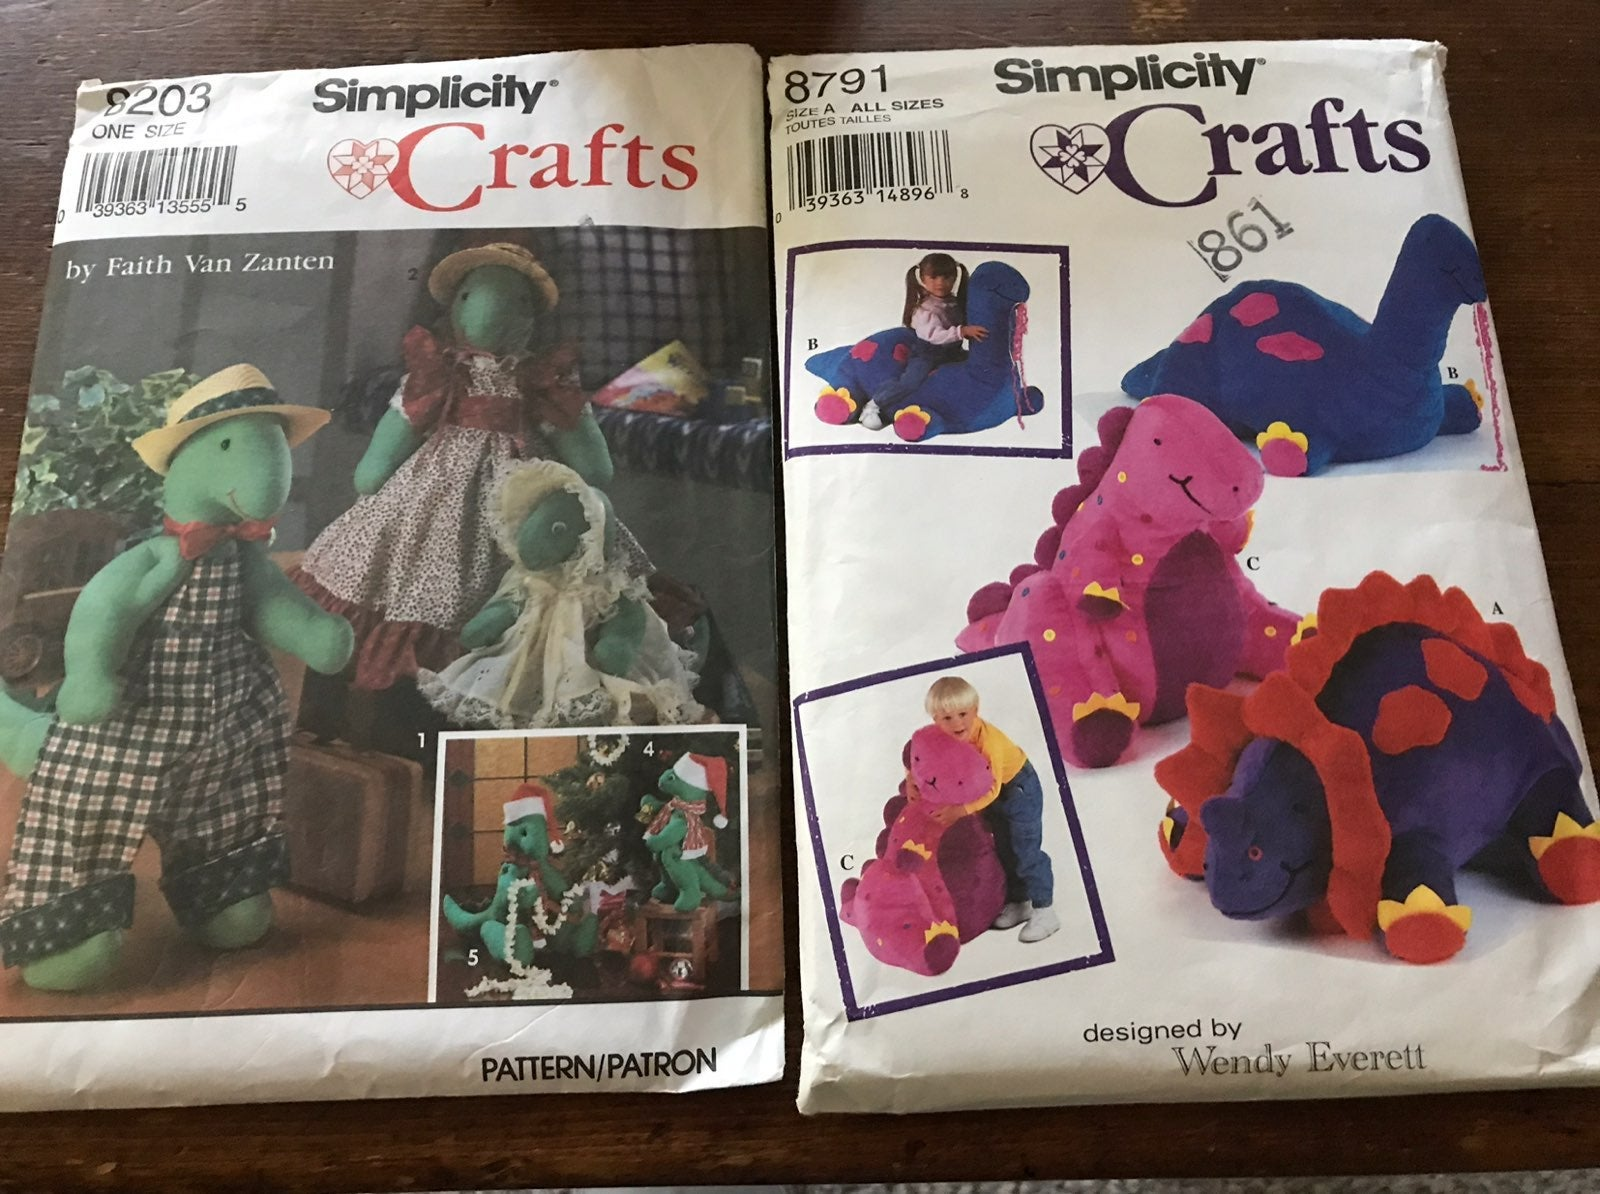 8791 8203 Simplicity Crafts Sewing patte